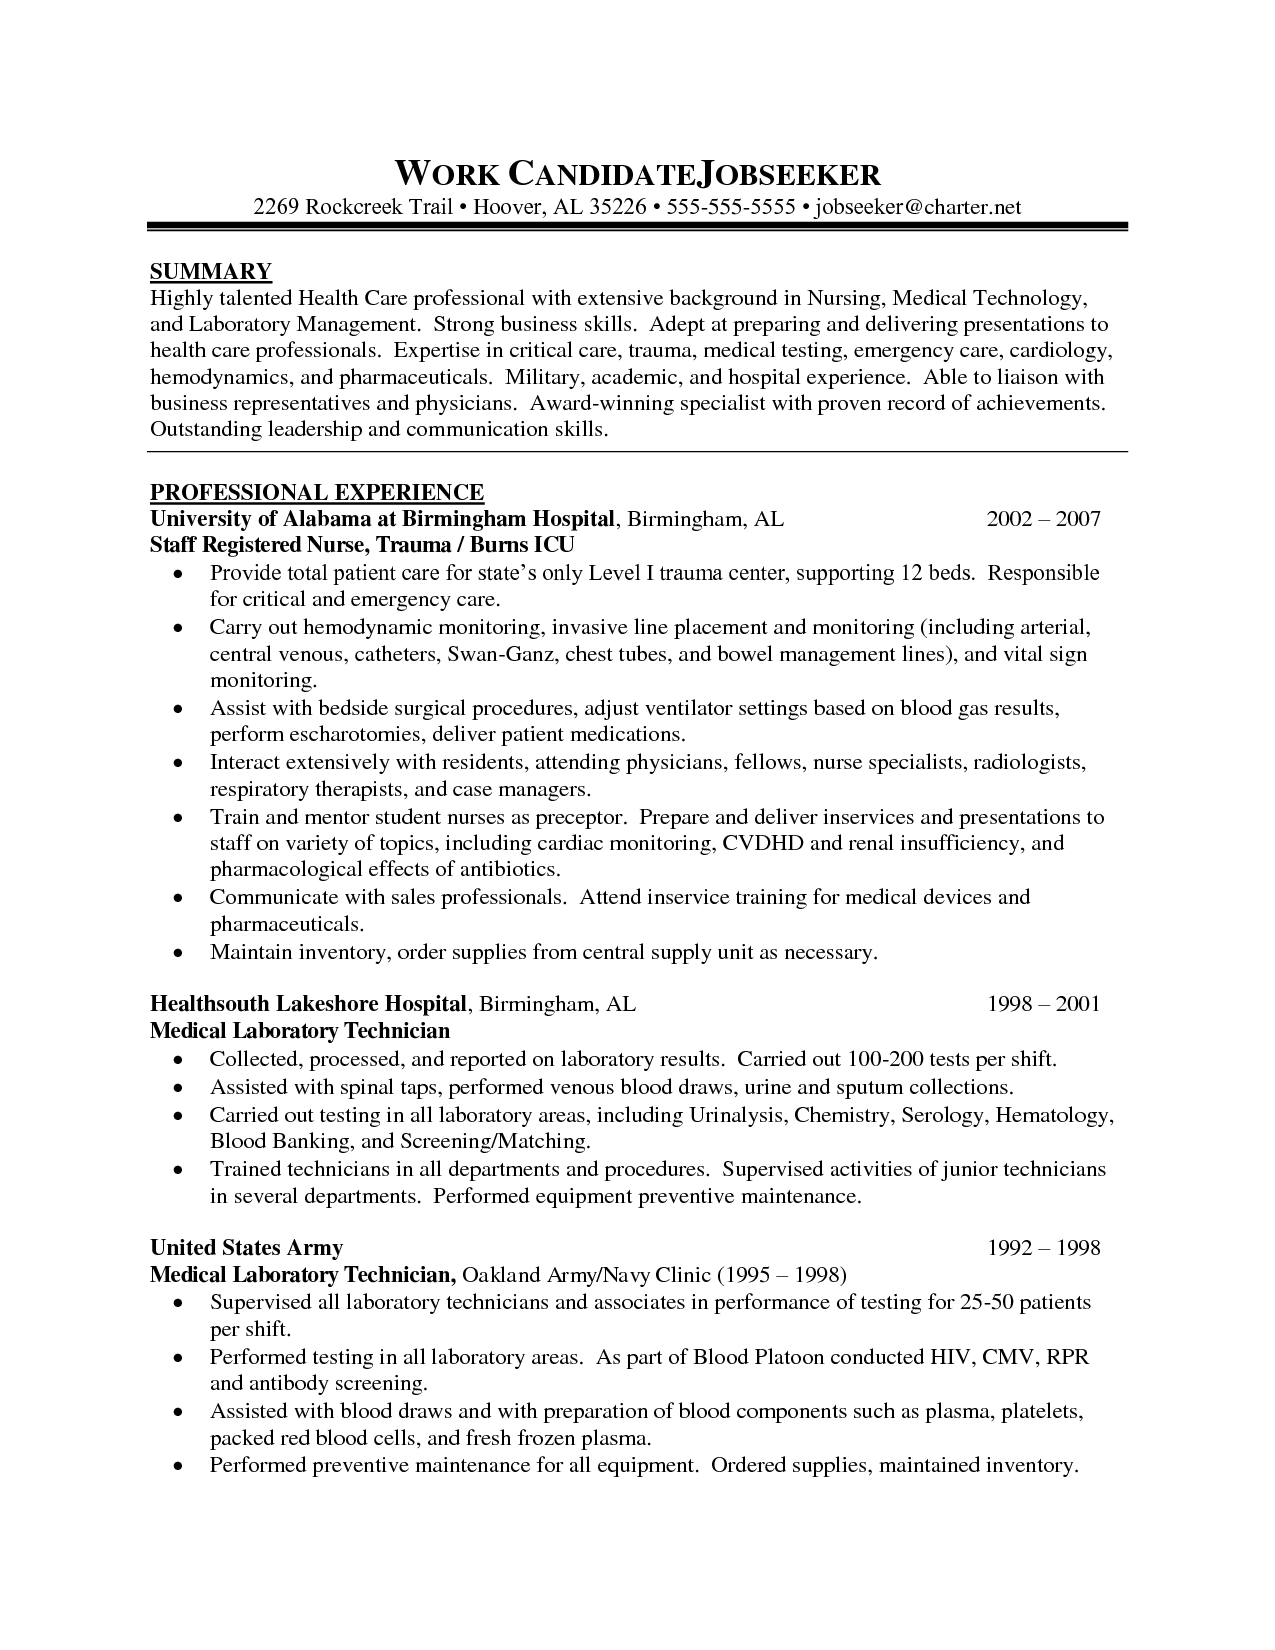 Areas Of Expertise Resume Examples Resume Examples Nursing Student  Pinterest  Professional Resume .